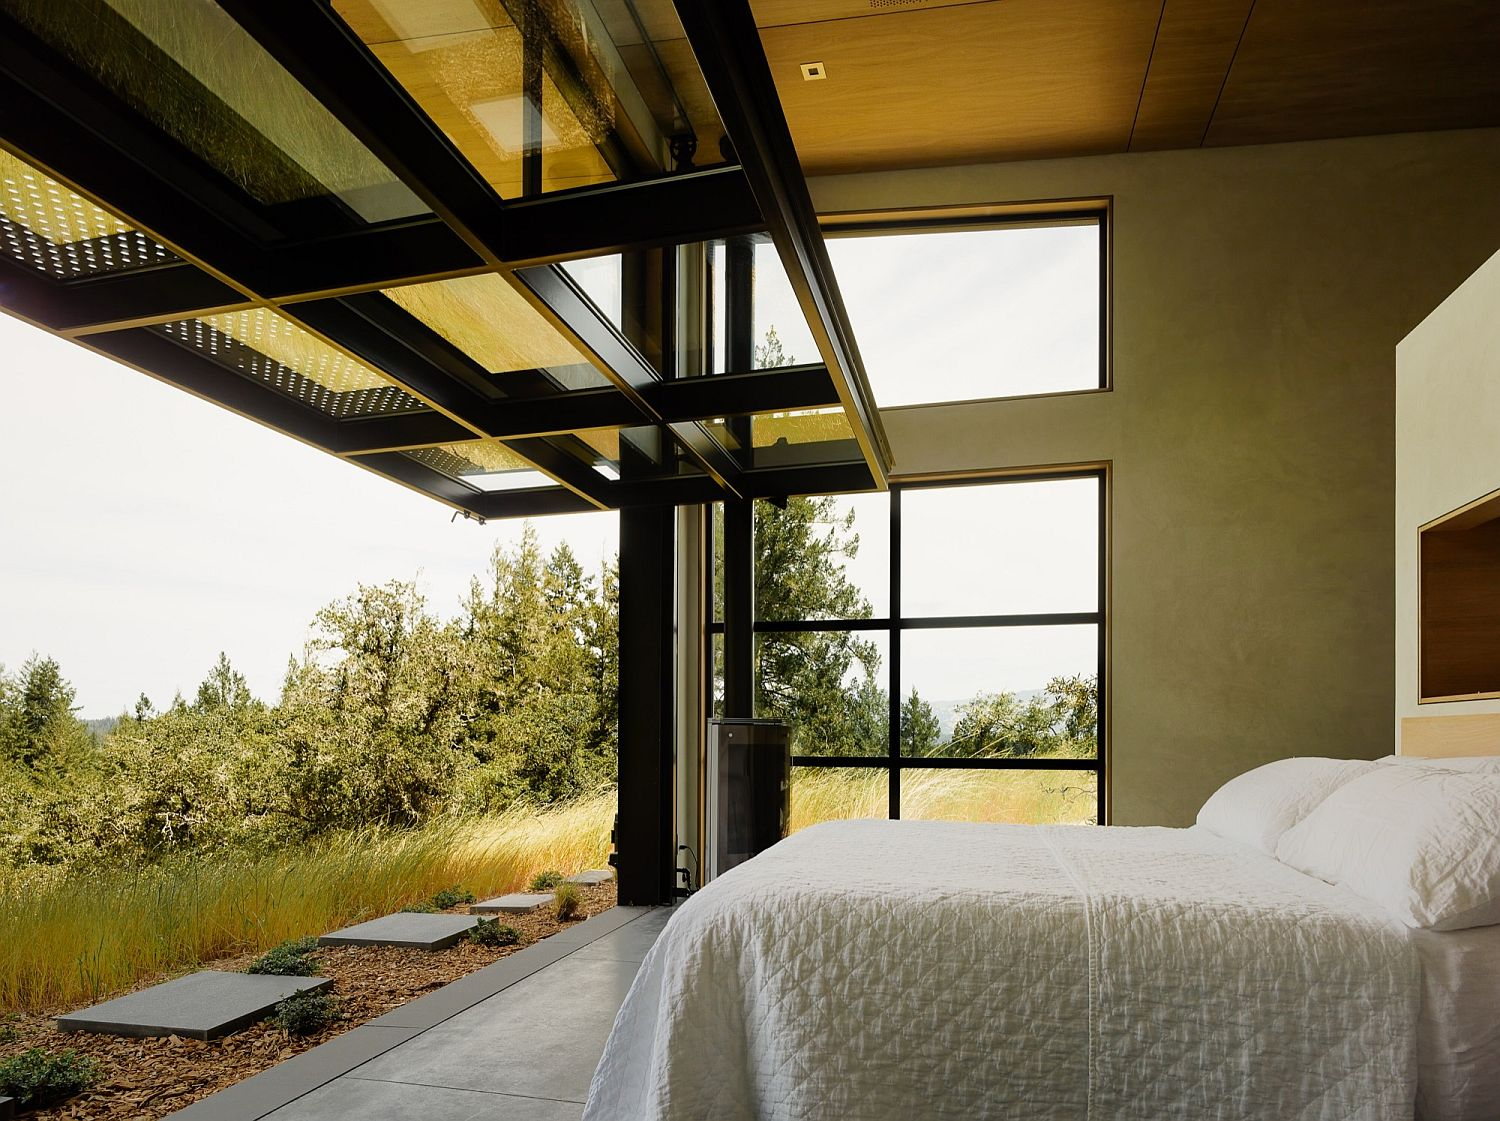 Large walls swing open to connect the bedroom with the outdoors